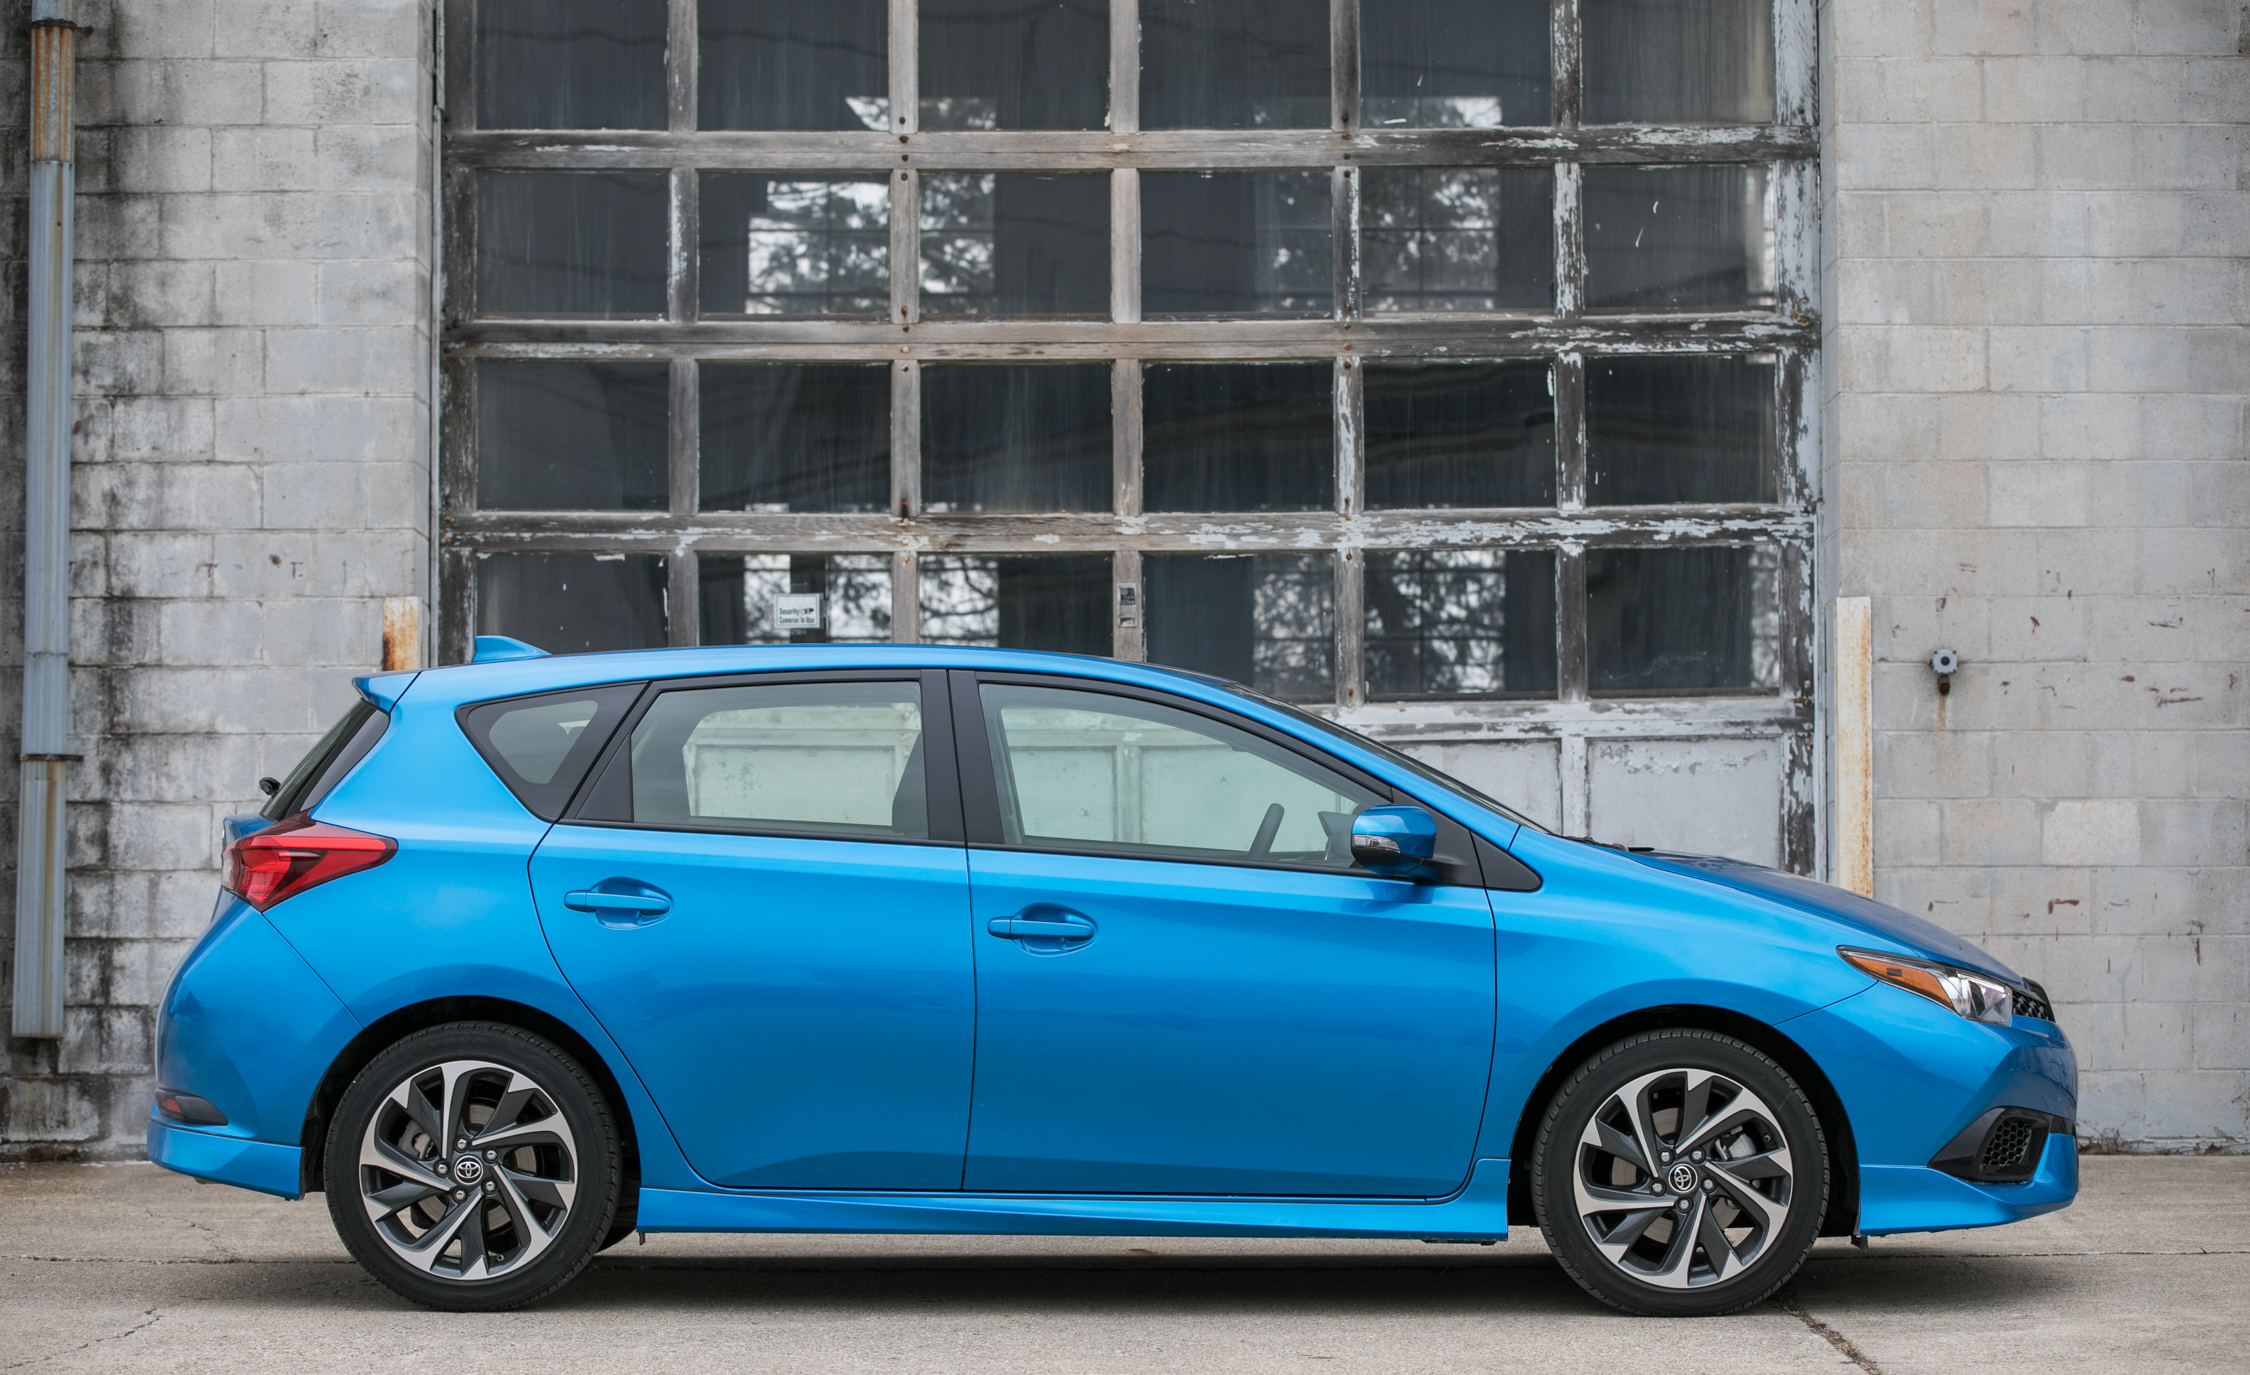 2017 Toyota Corolla IM Hatchback Exterior Side (Photo 8 of 52)